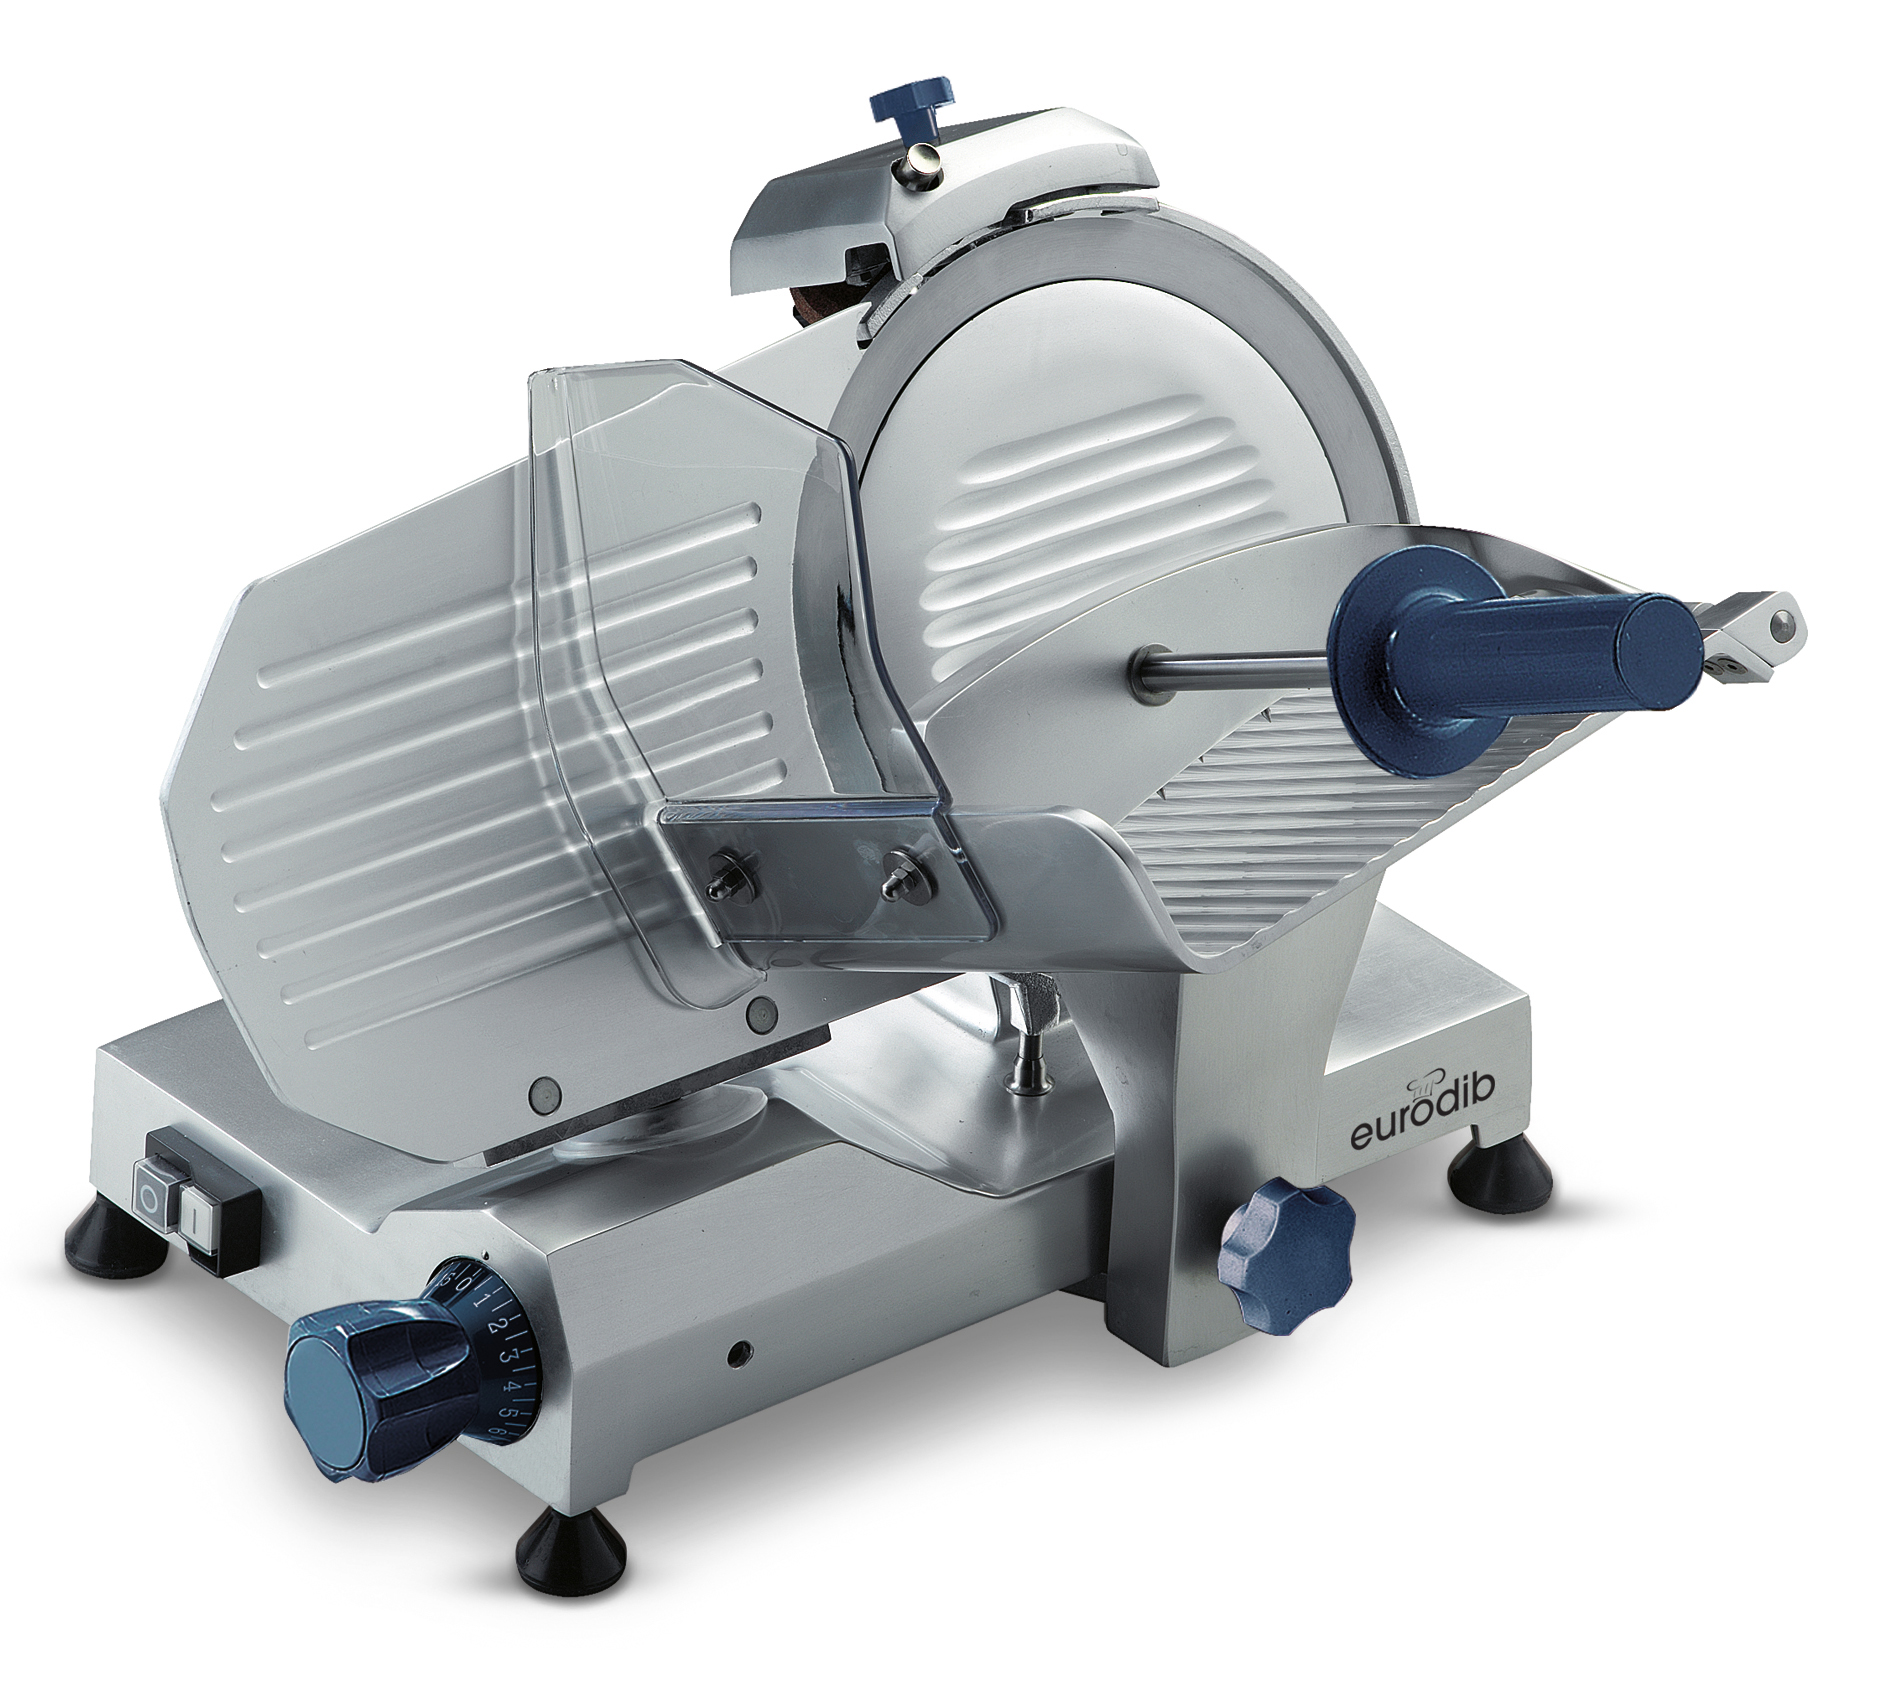 Eurodib USA MIRRA250P 110 meat slicers